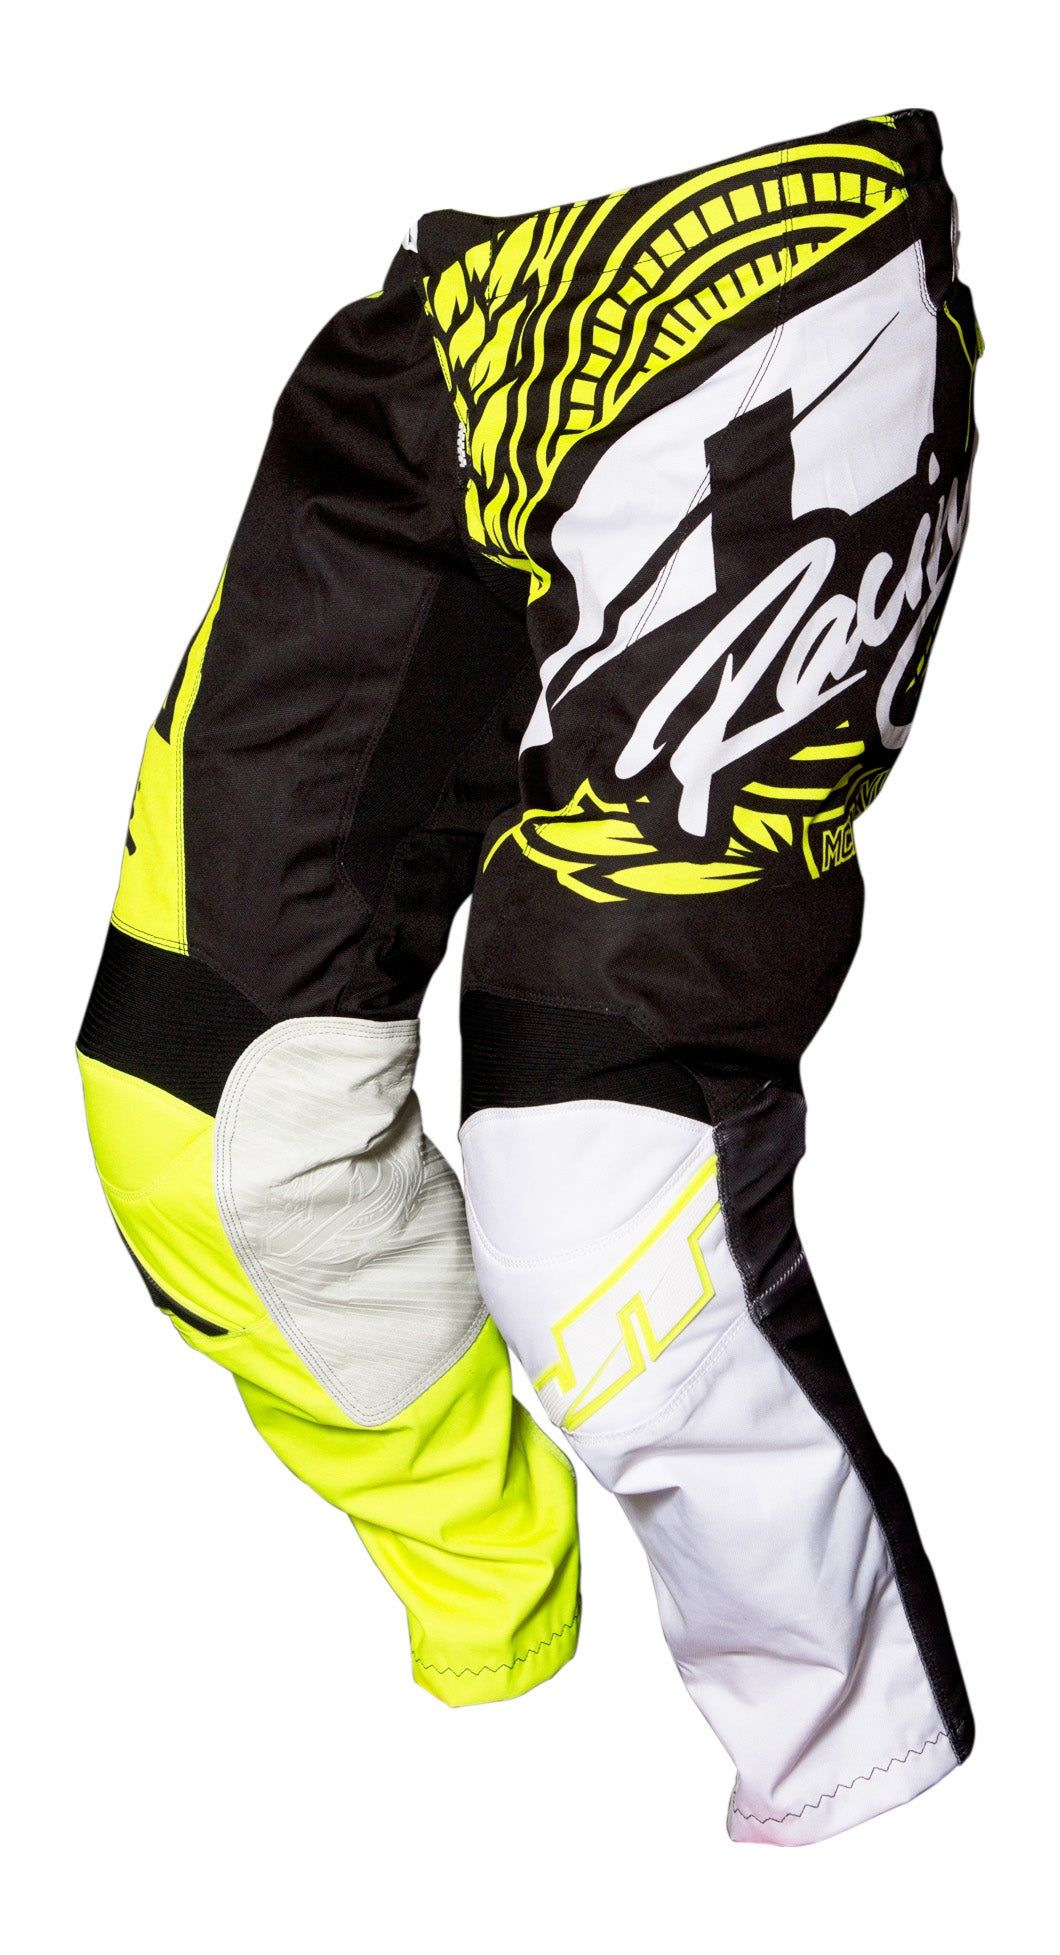 JT RACING USA Flex-Victory Pants, Black/Neon Yellow